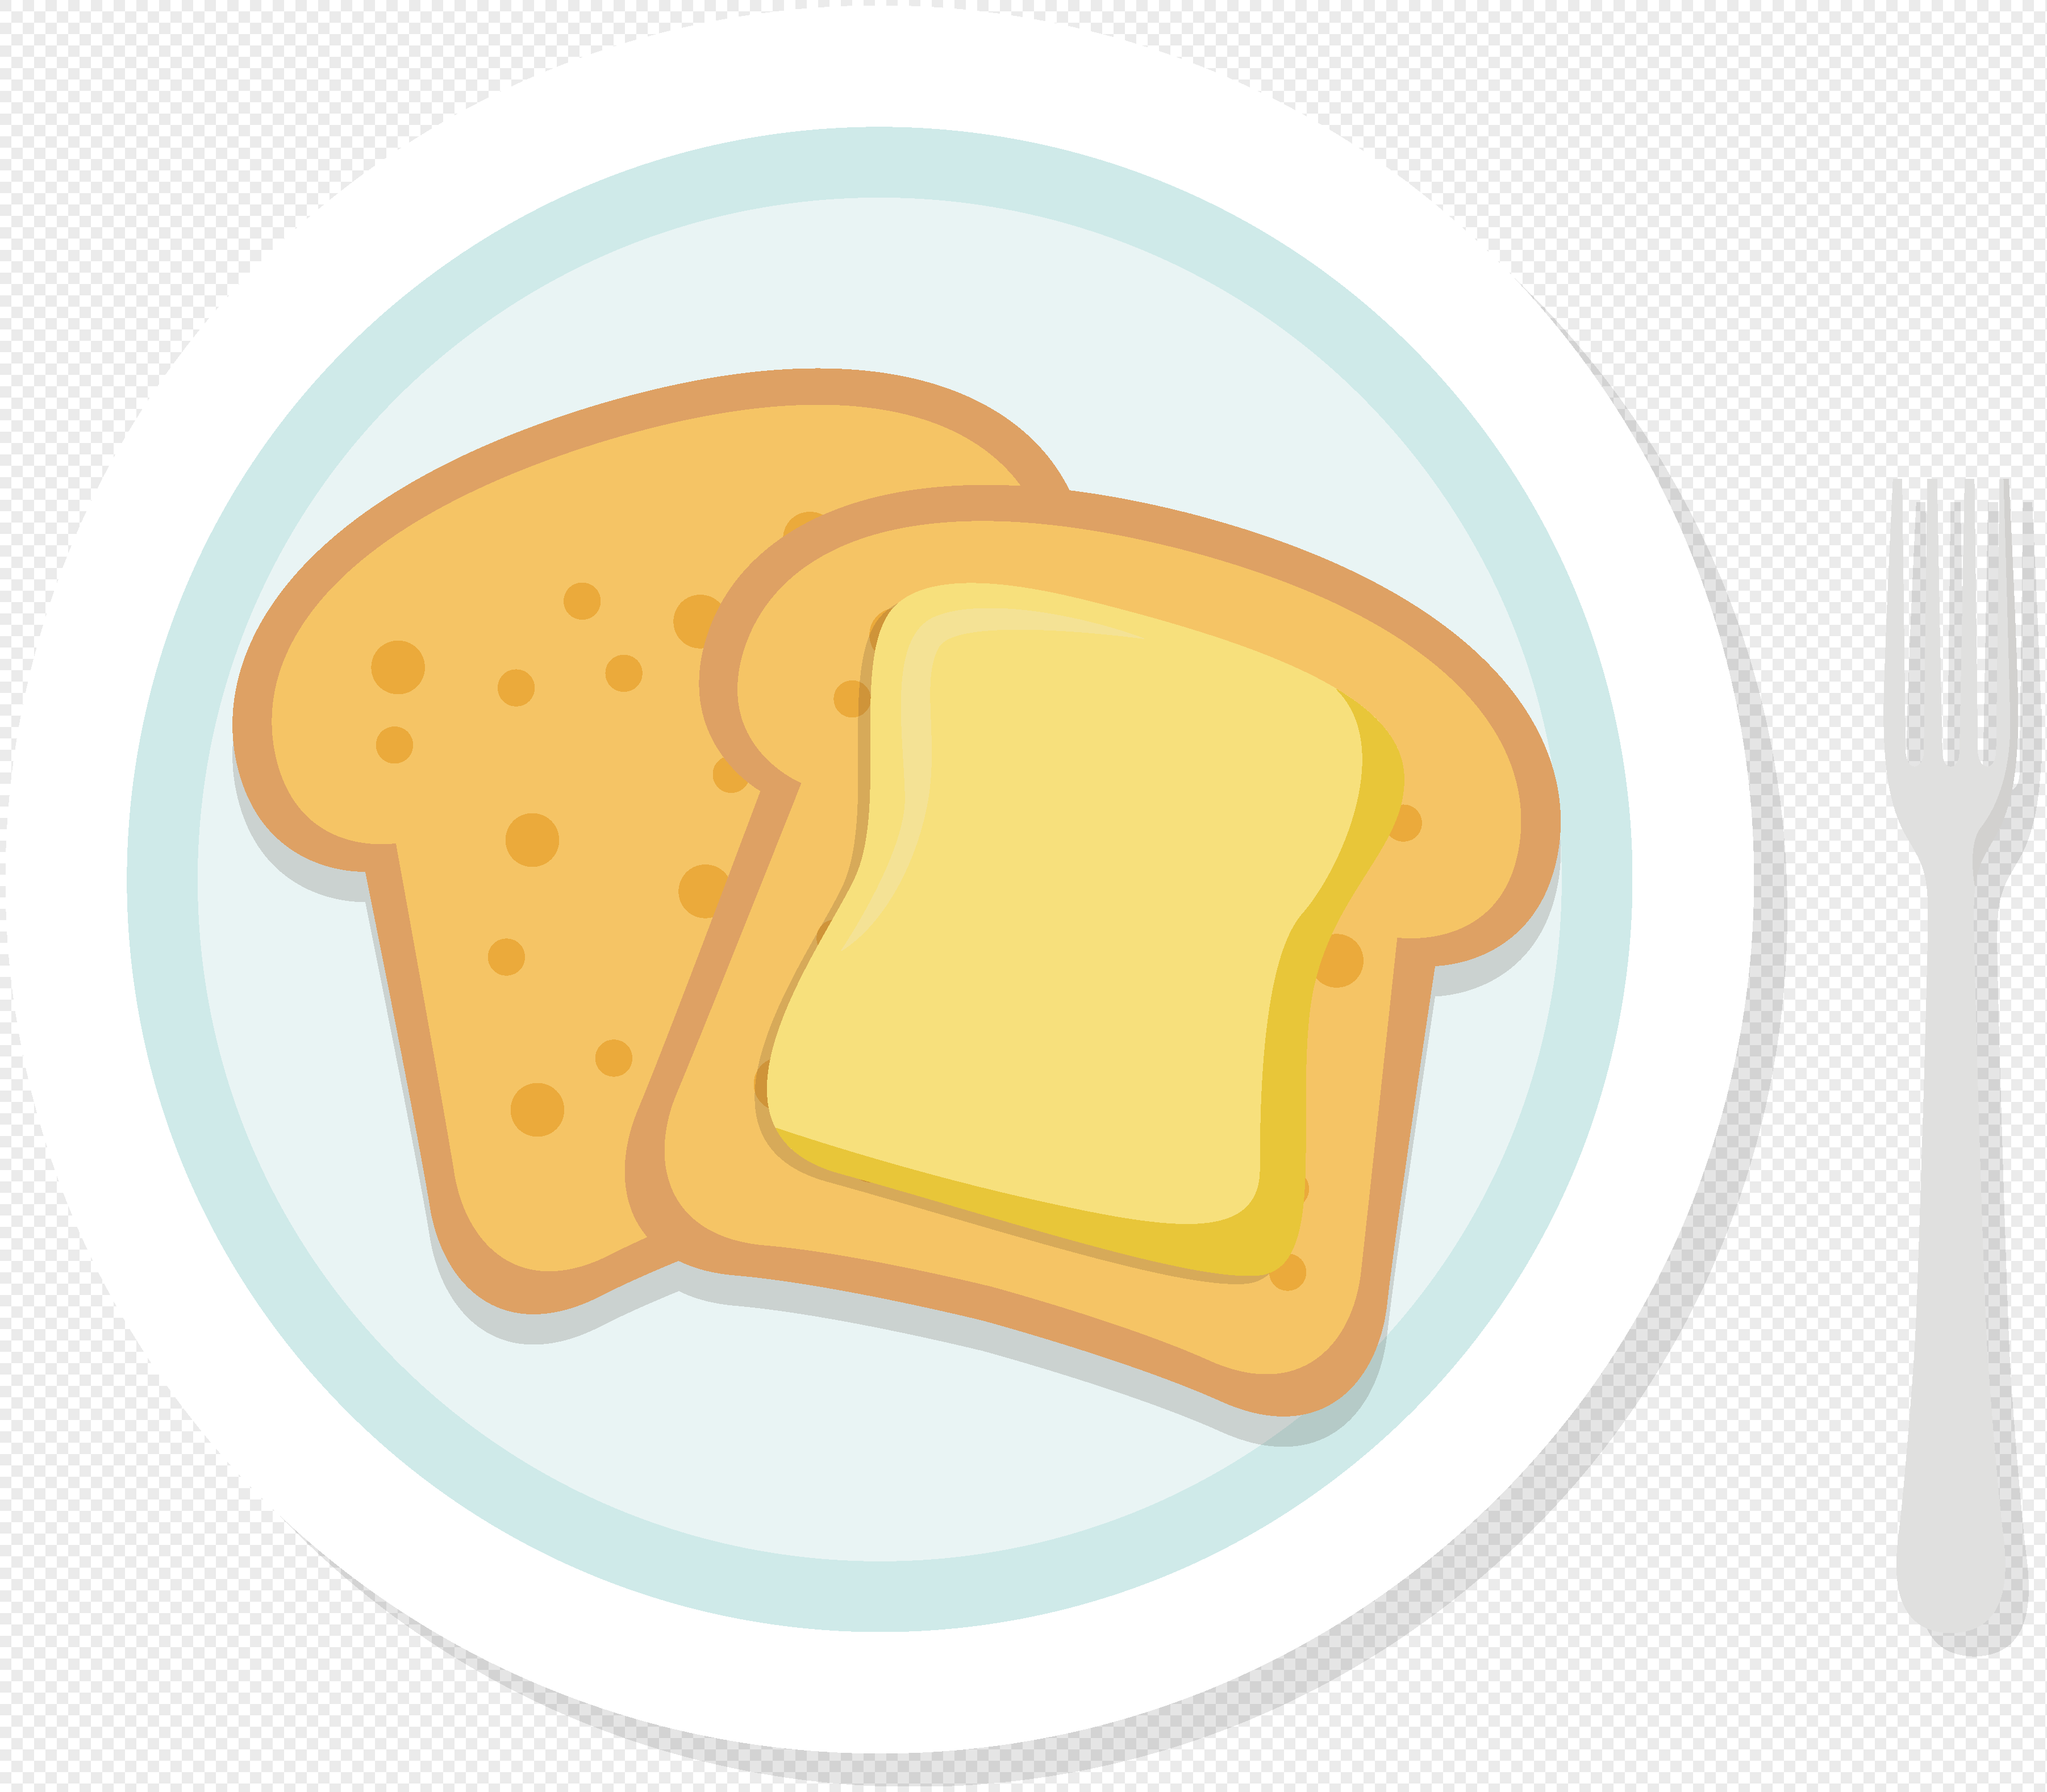 bread slice vector png image picture free download 400363930